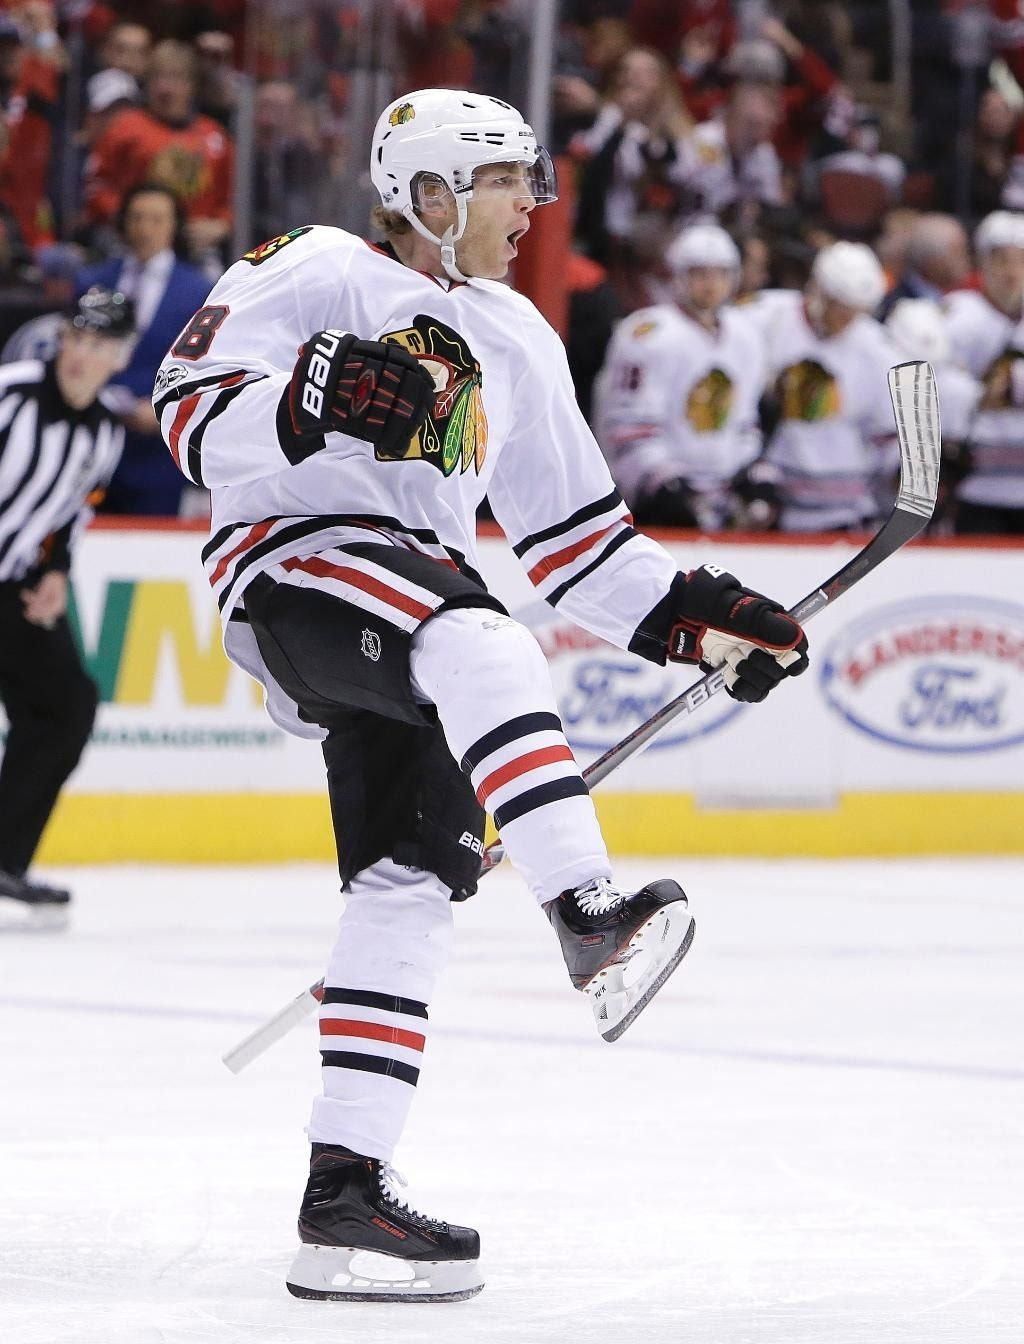 Kane, Blackhawks beat Coyotes 4-3 to snap 3-game skid